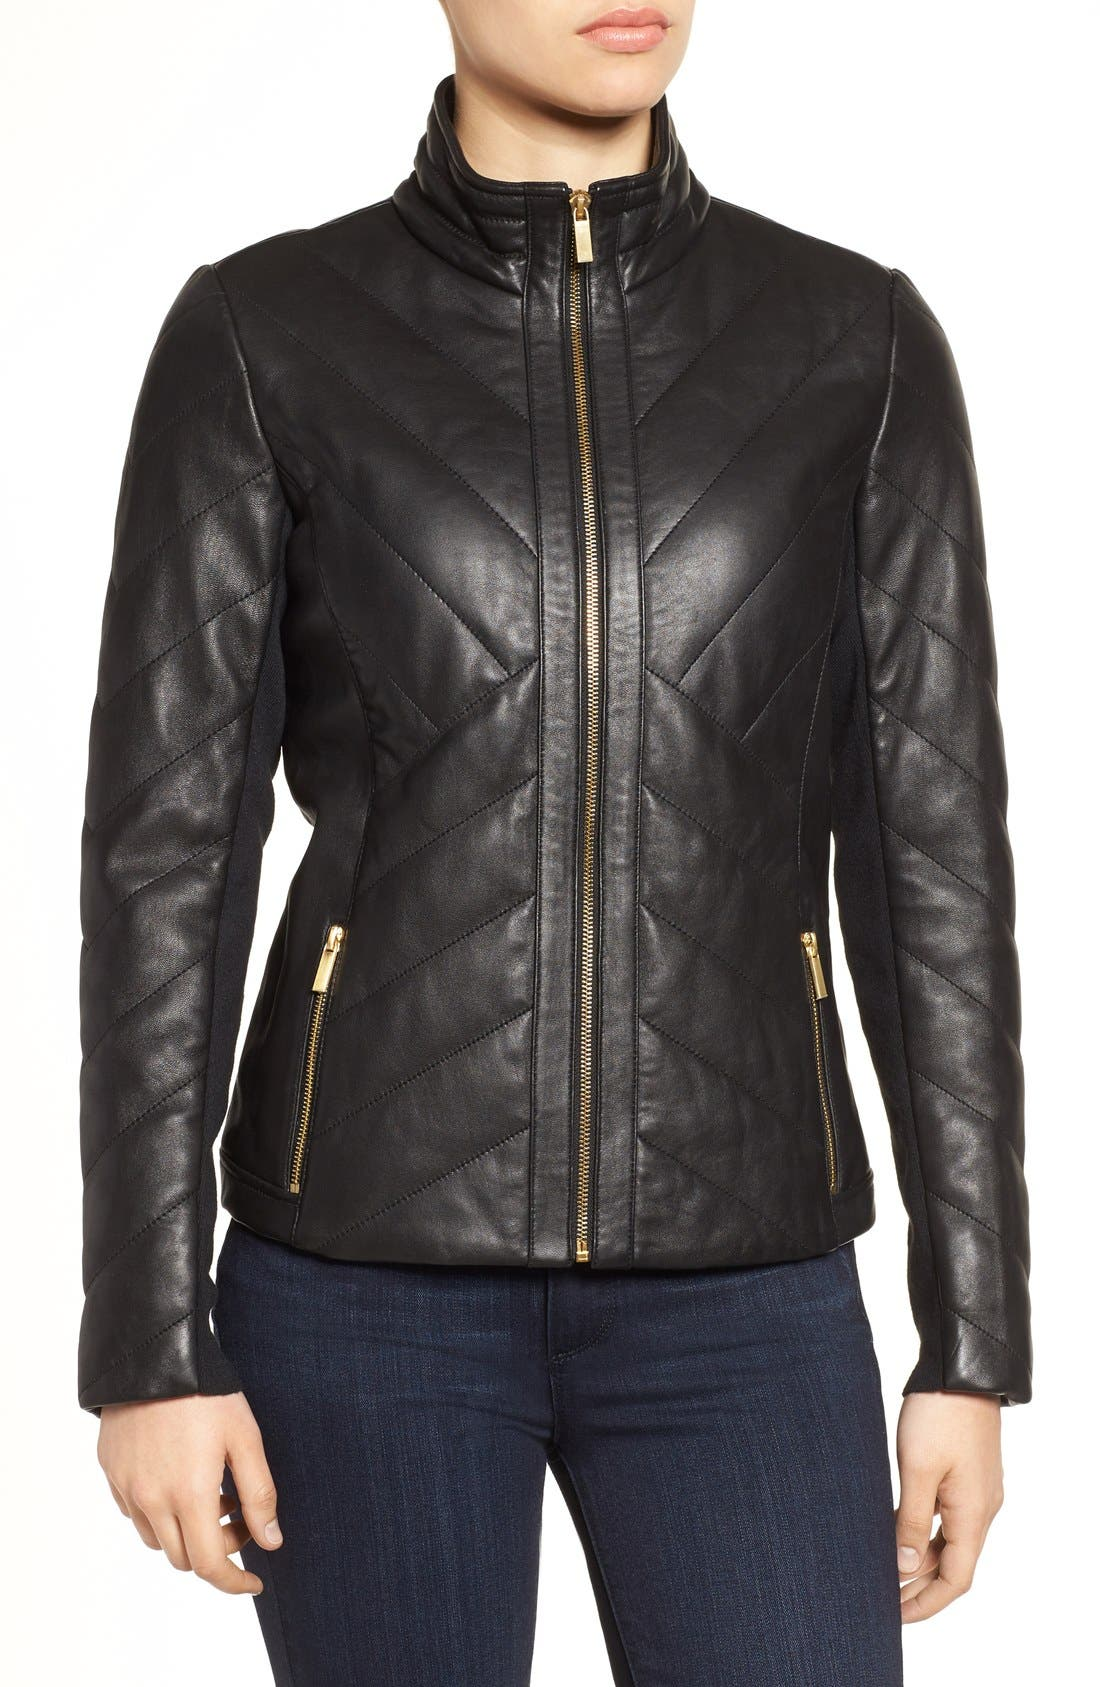 Badgley Mischka Eloise Quilted Leather Moto Jacket,                             Alternate thumbnail 6, color,                             001